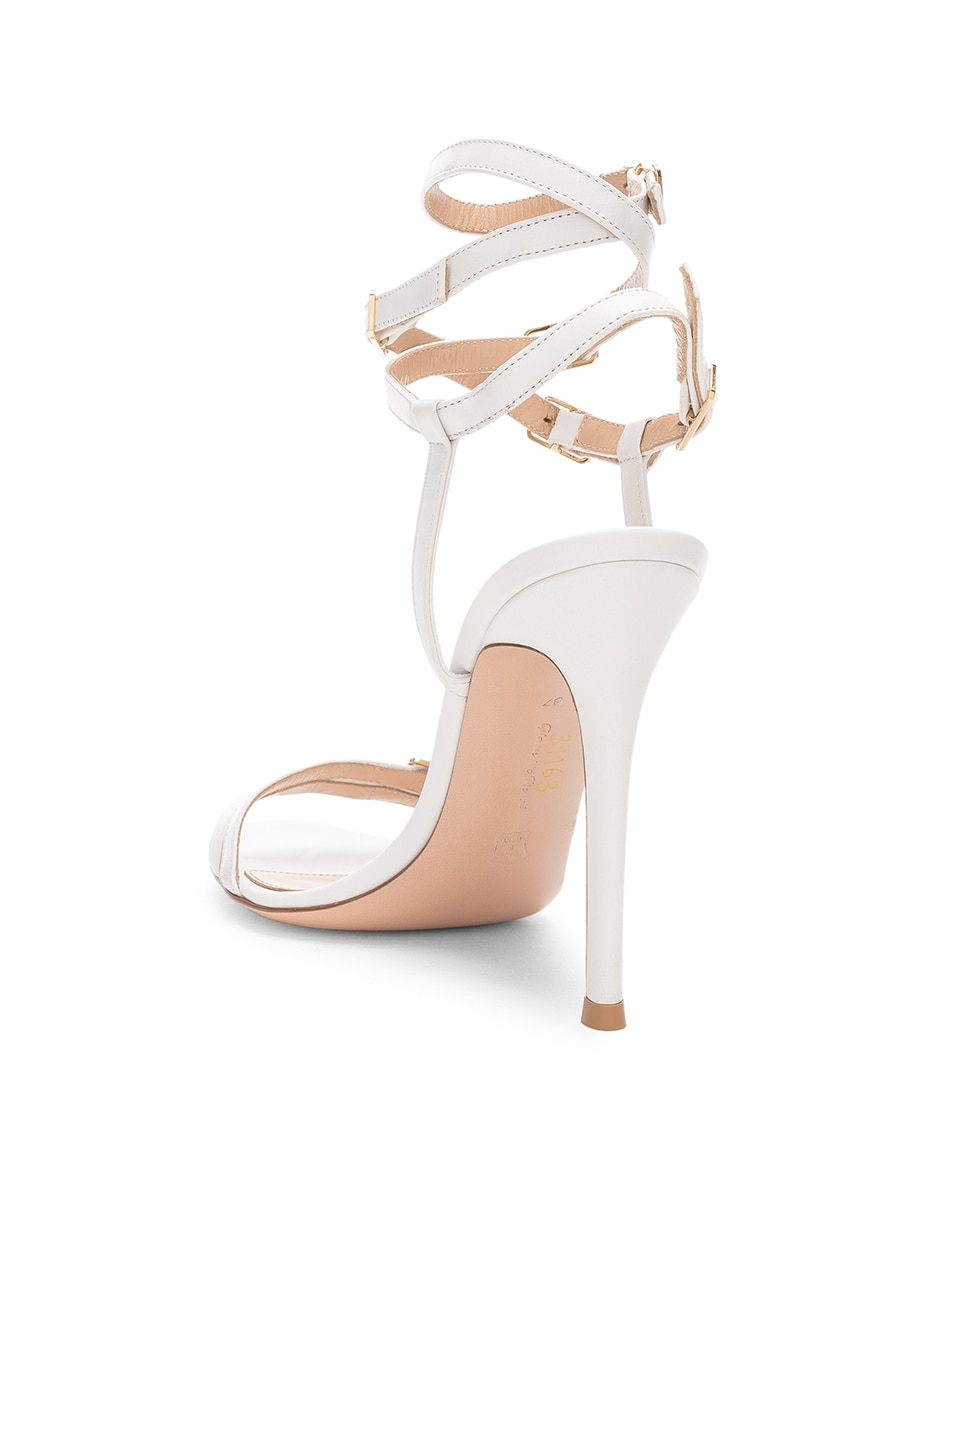 Image 3 of Gianvito Rossi Cassandra Buckle Strappy Heel in White